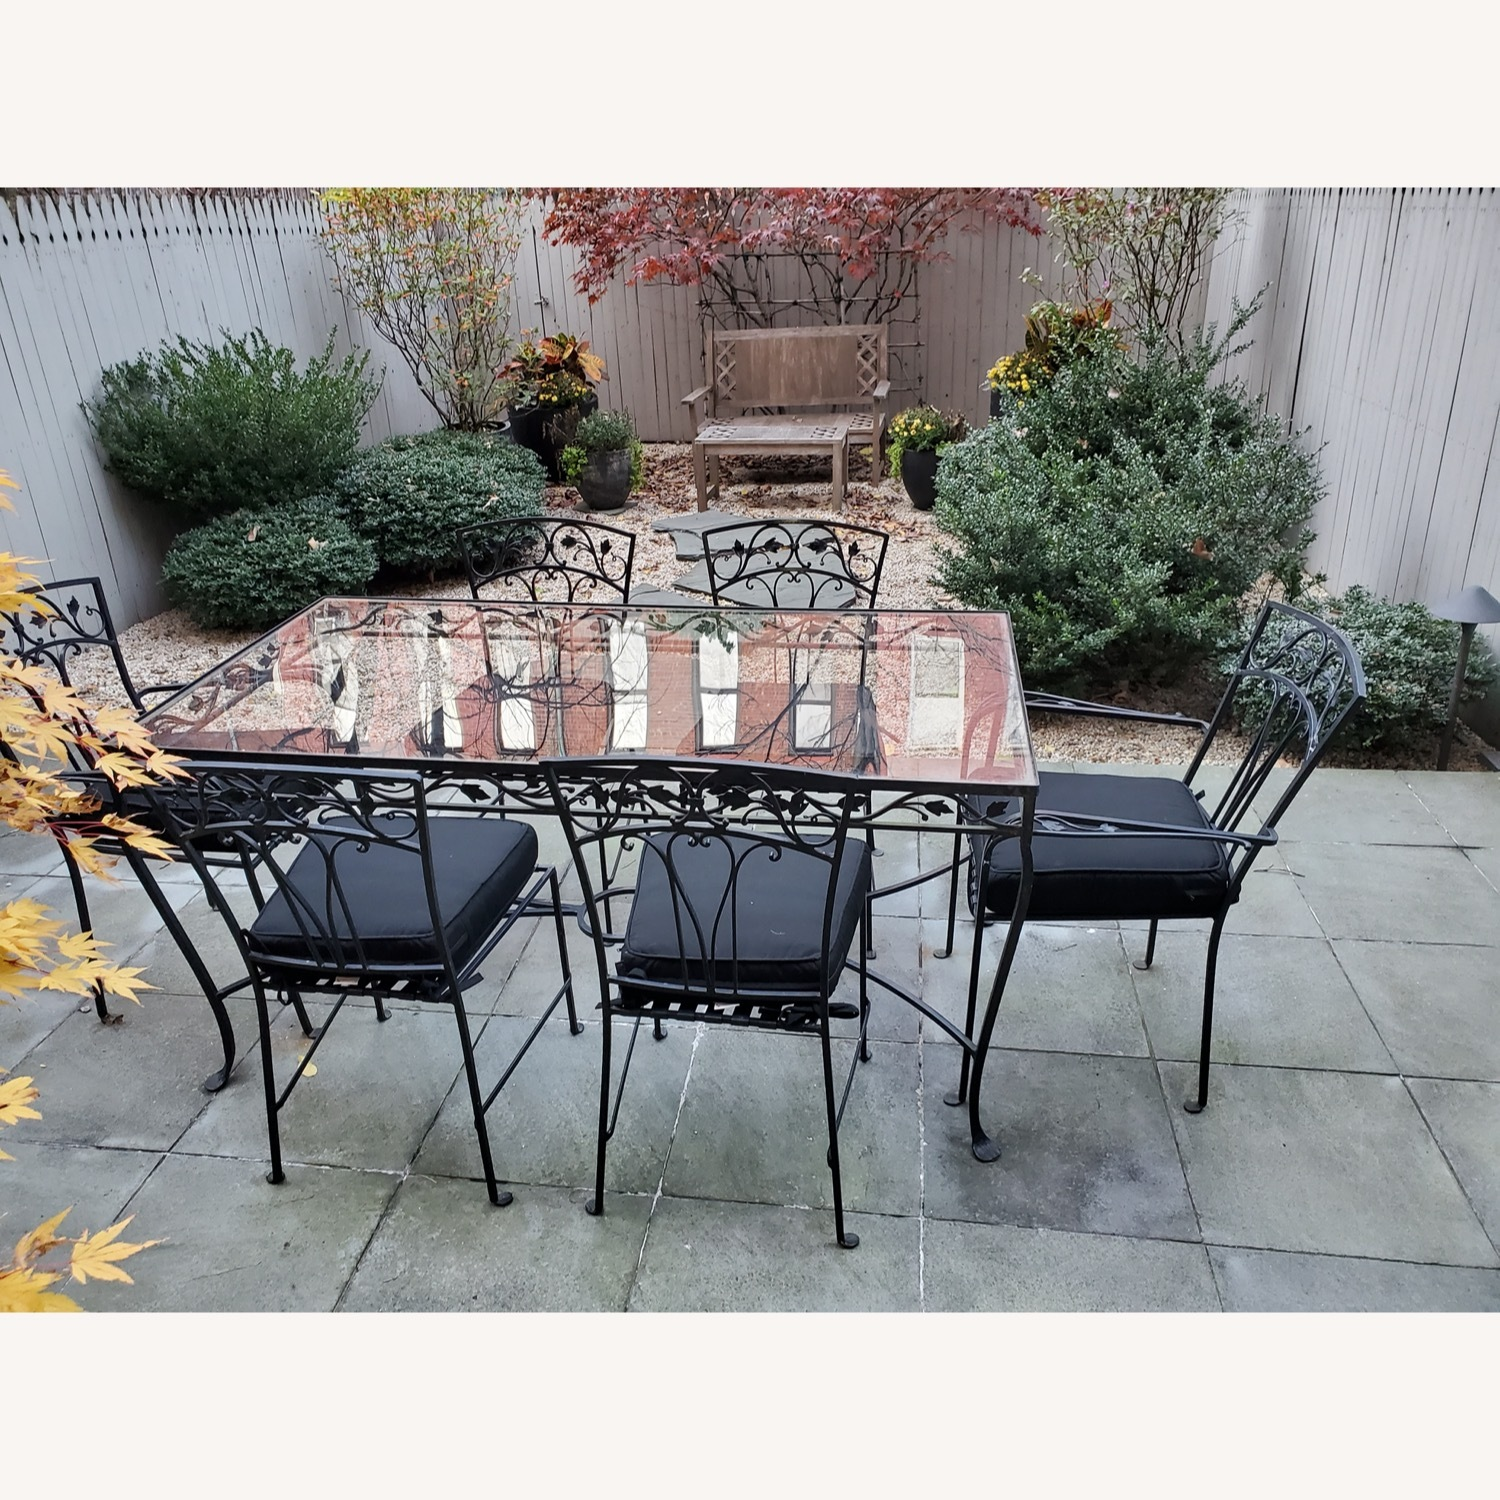 1940's VINTAGE OUTDOOR WROUGHT IRON TABLE/CHAIRS - image-2